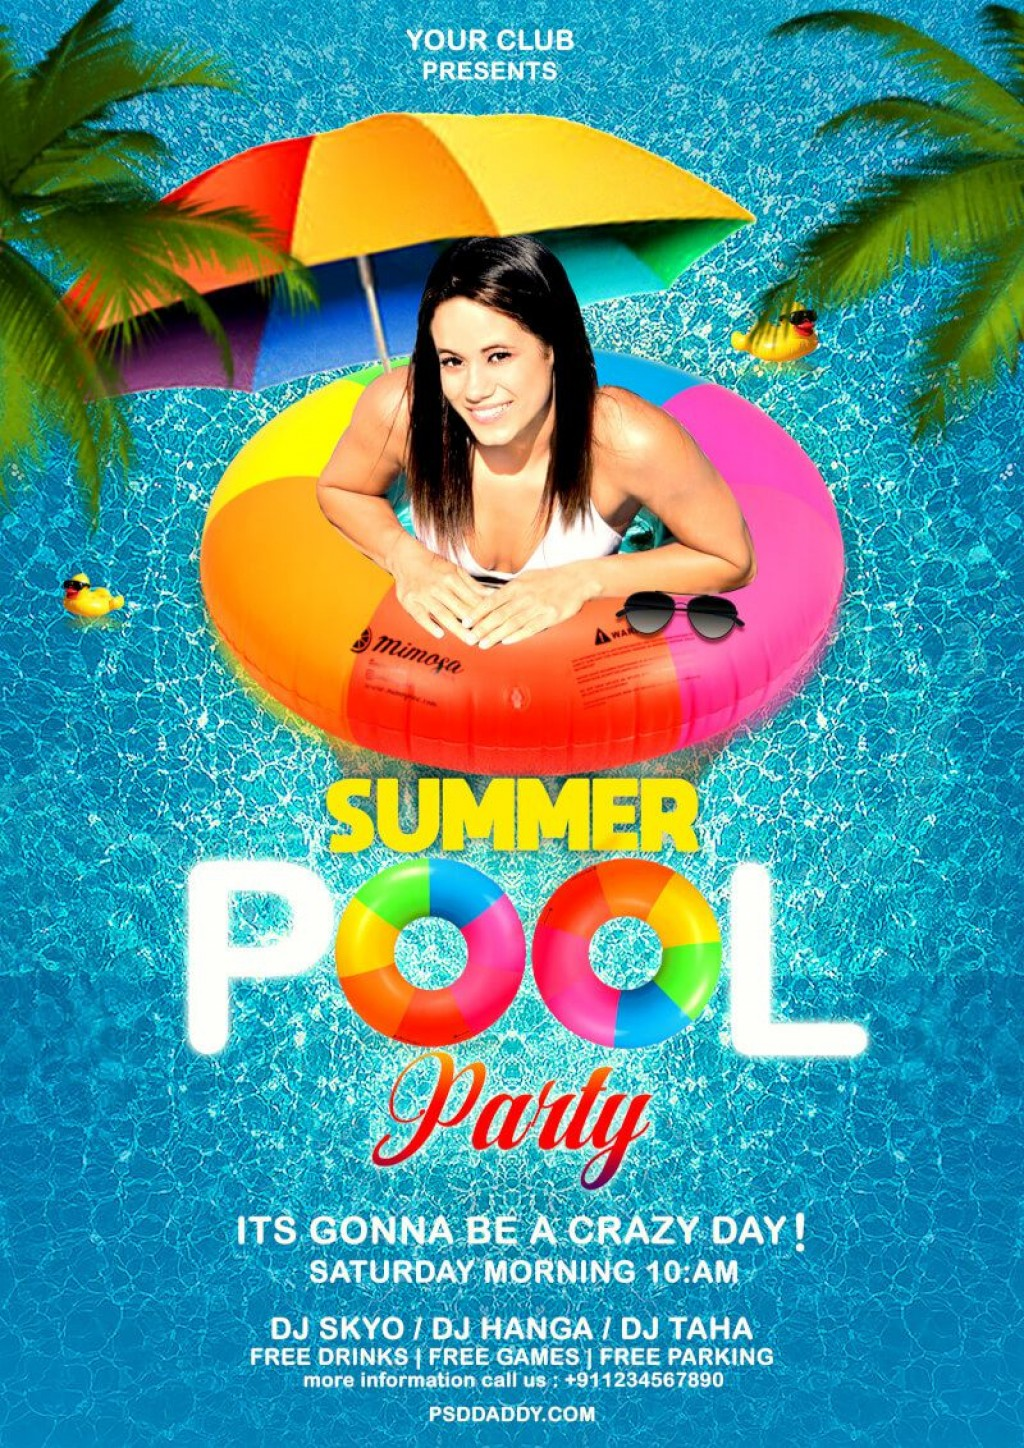 010 Awful Pool Party Flyer Template Free Concept  Photoshop PsdLarge